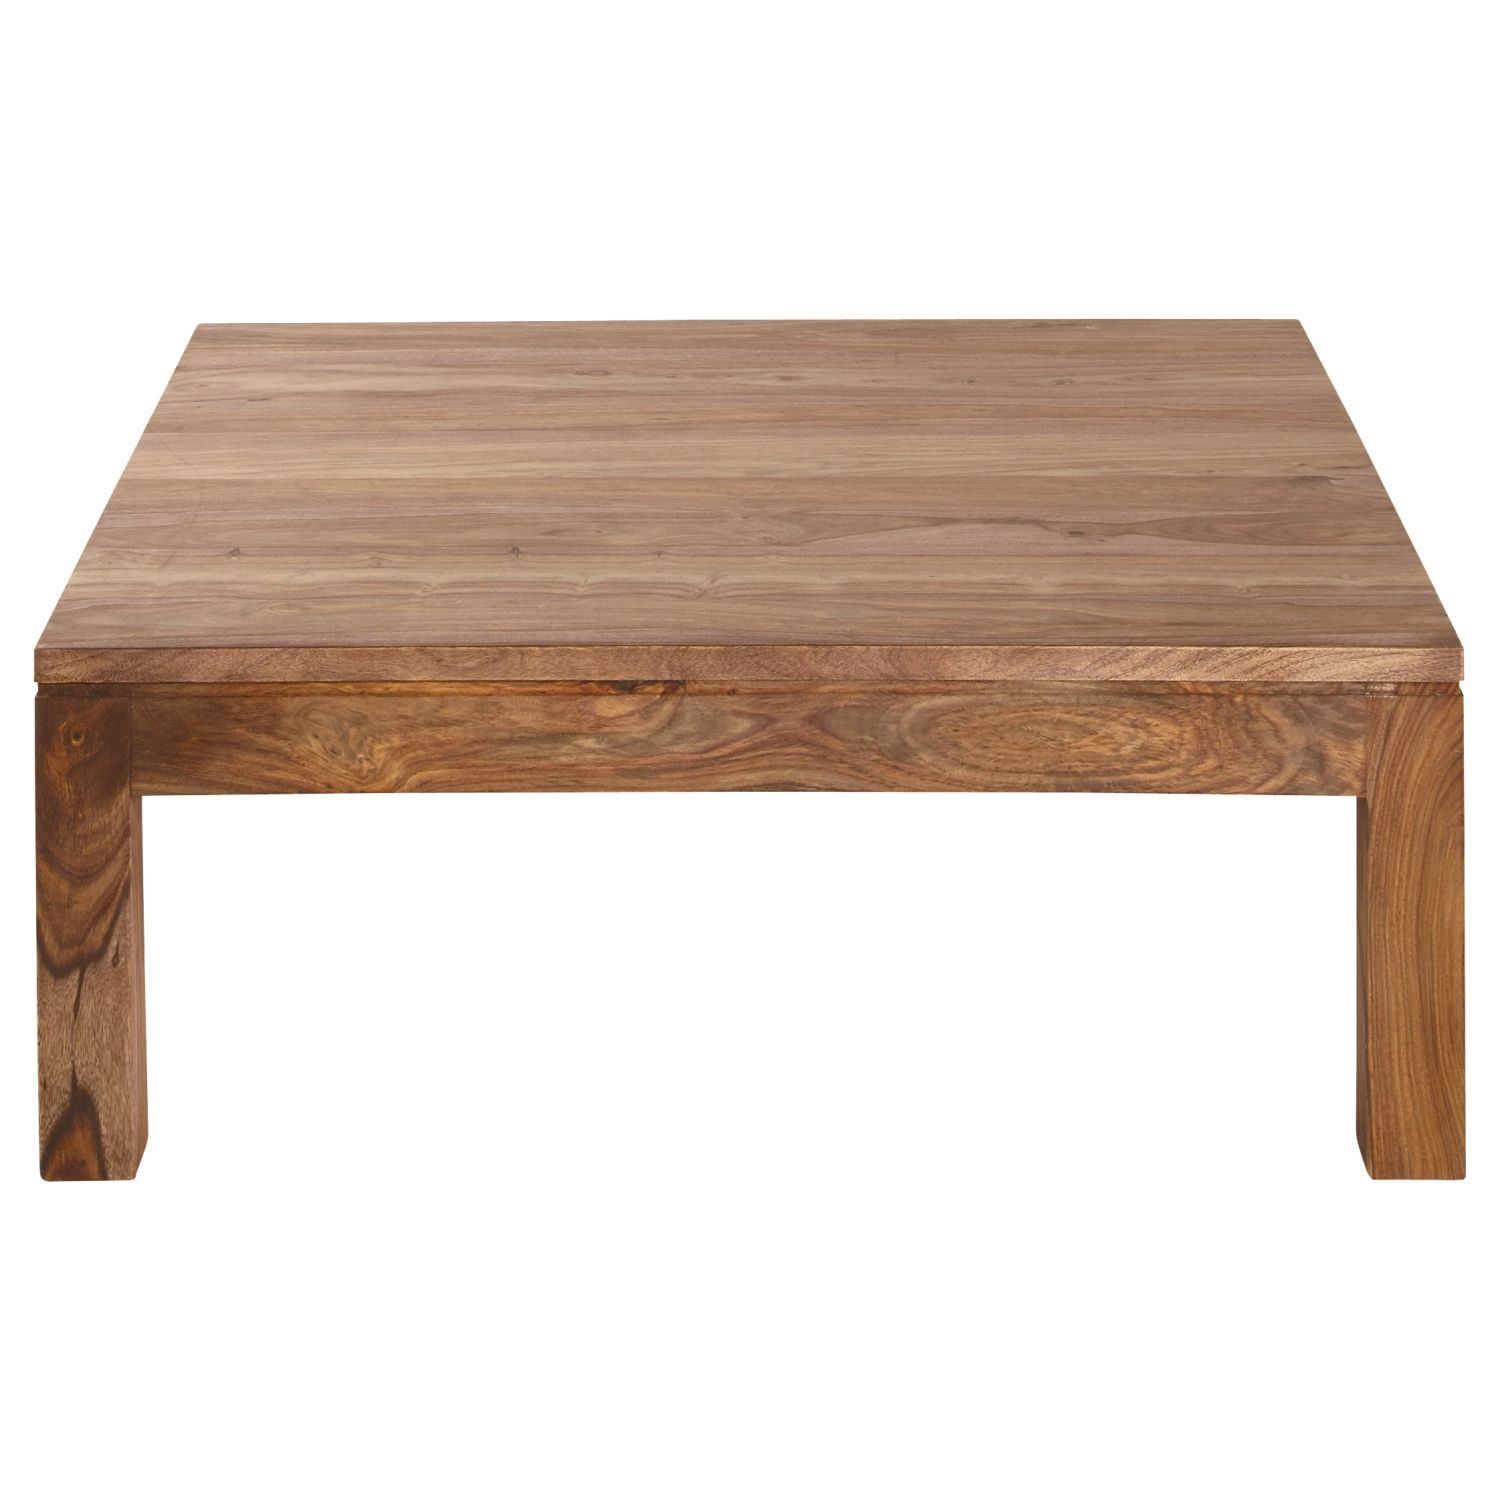 Discover Maisons Du Monde S Product Name Browse A Varied Range Of Stylish Affordable Furniture To Table Basse Maison Du Monde Table Basse Table Basse Salon